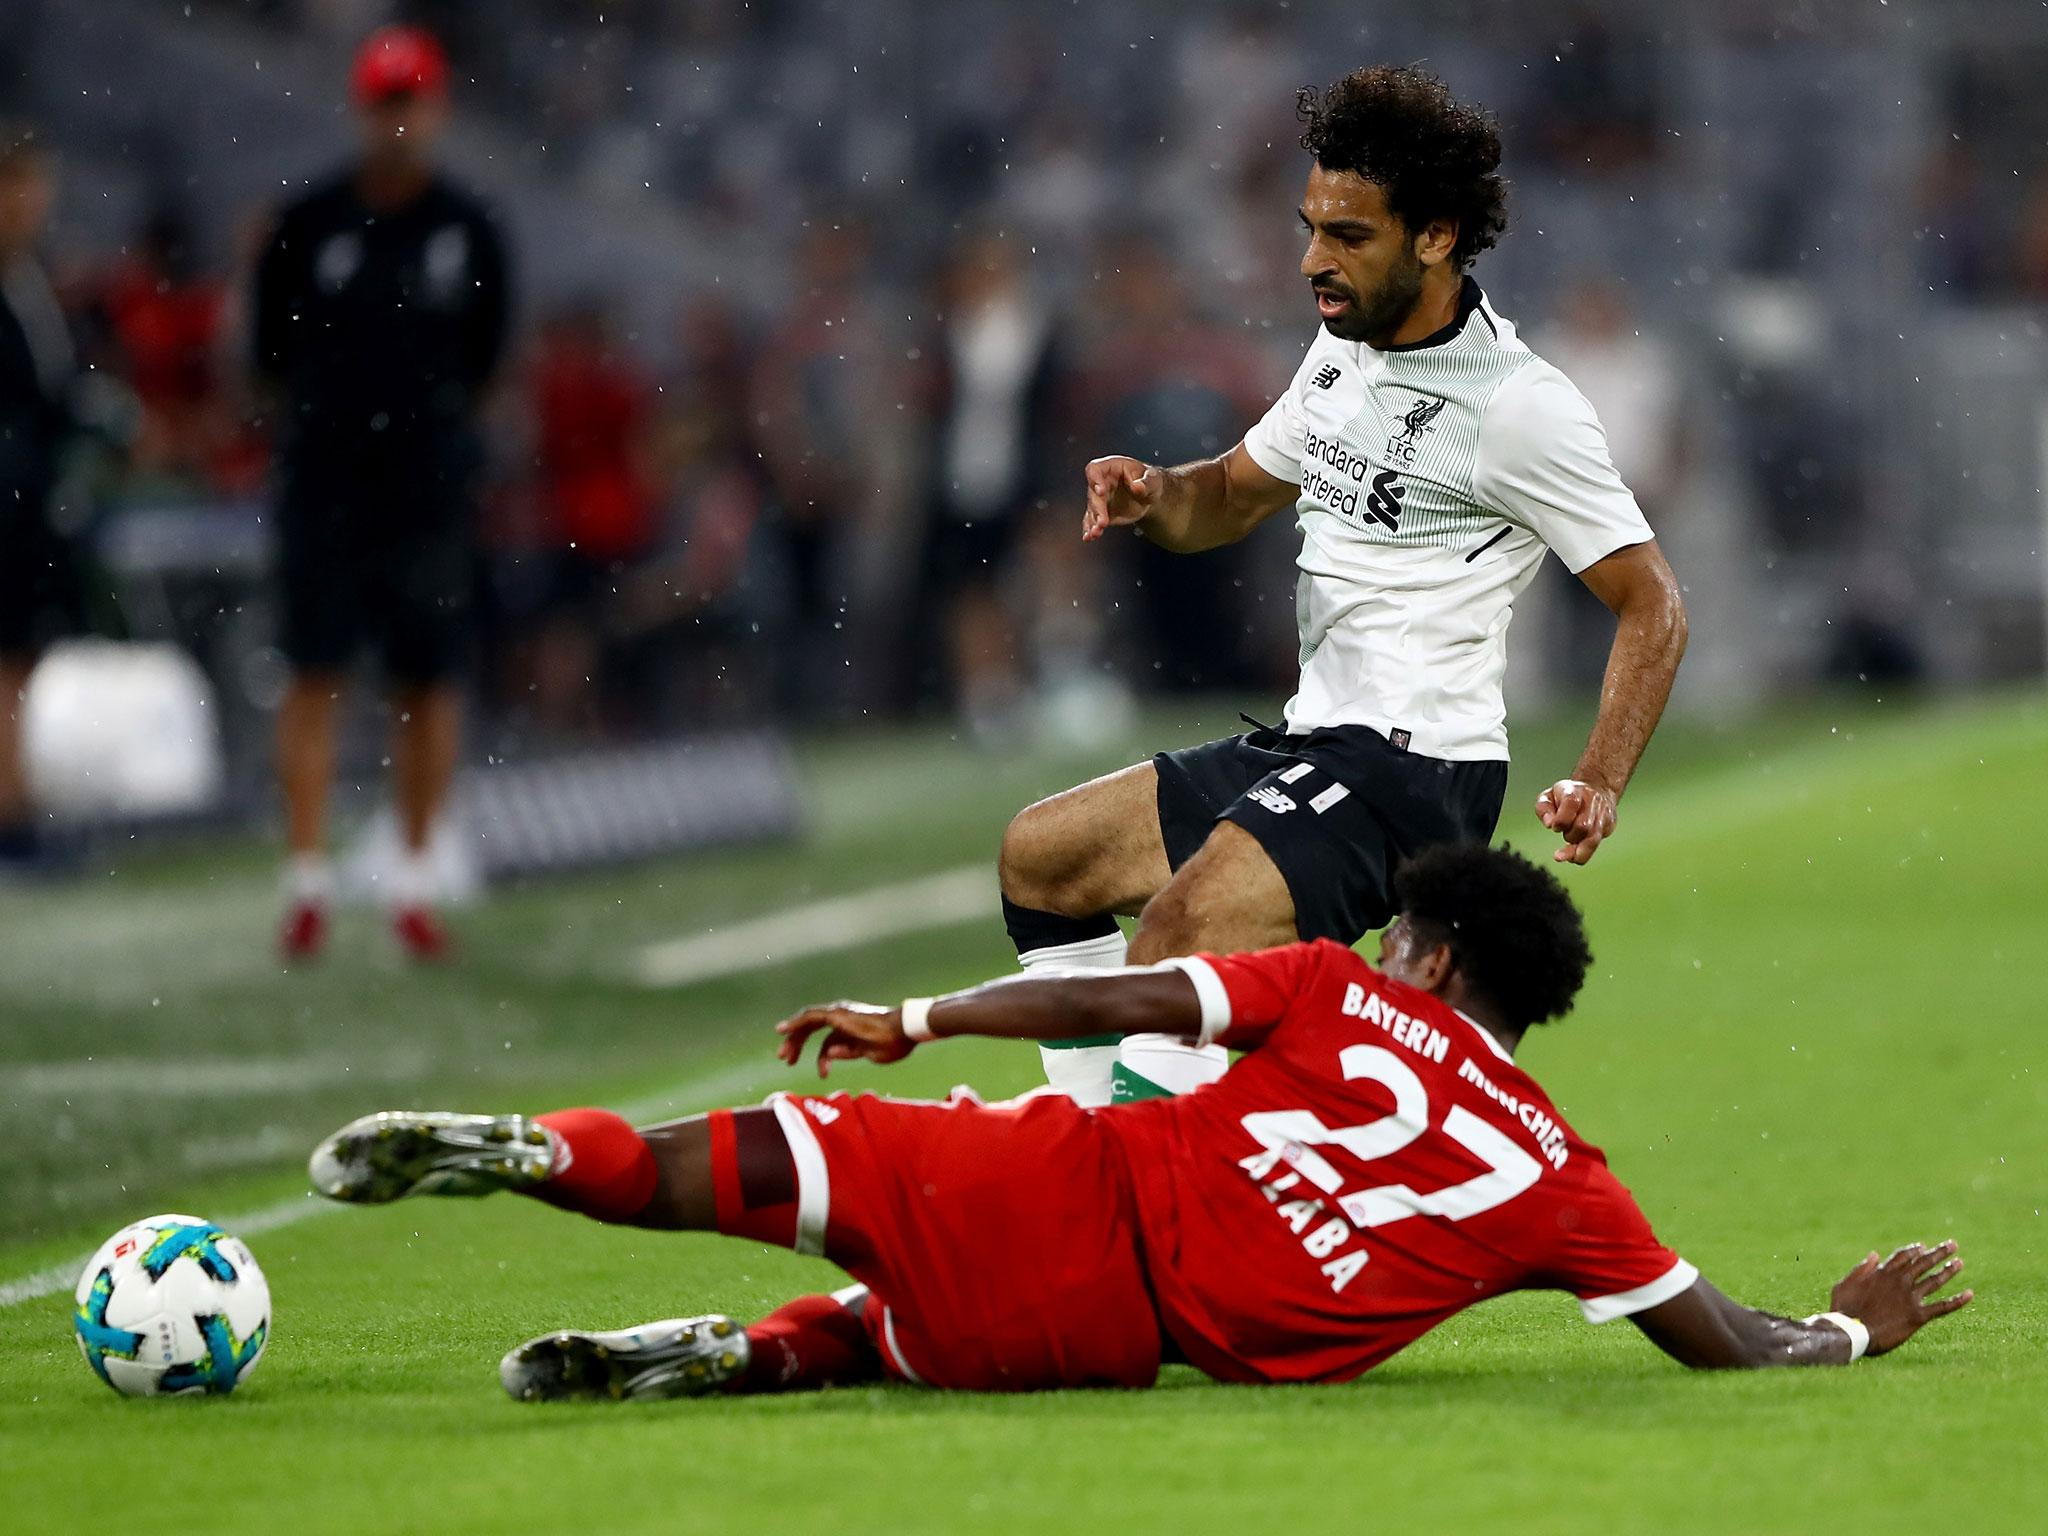 Bayern – Liverpool Facebook: Bayern Vs Liverpool Live: Latest Score And Updates After